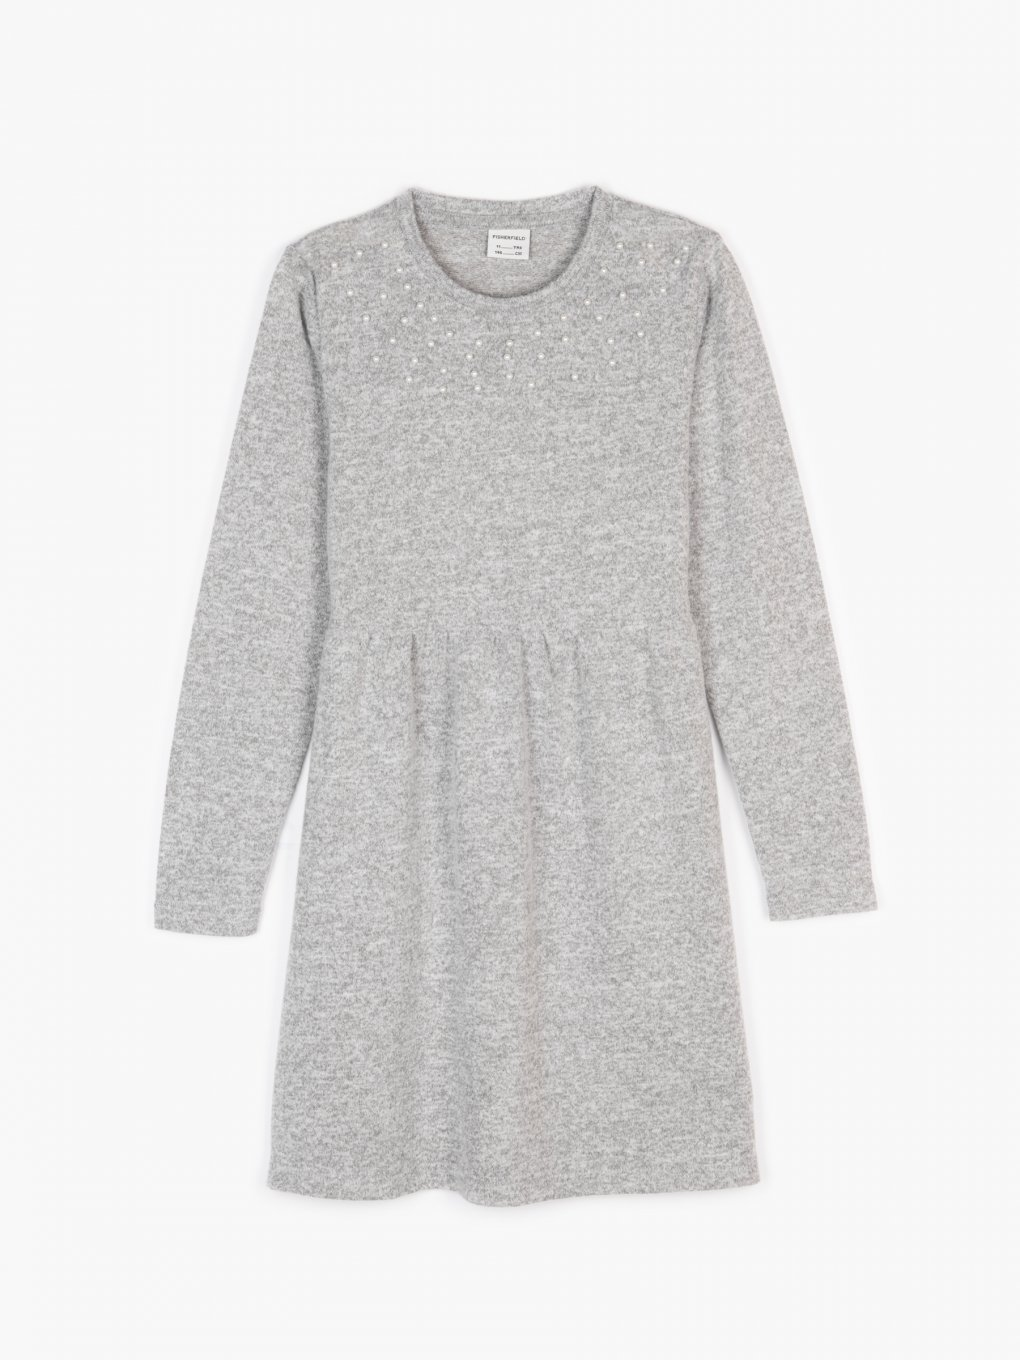 Fine knit dress with pearls